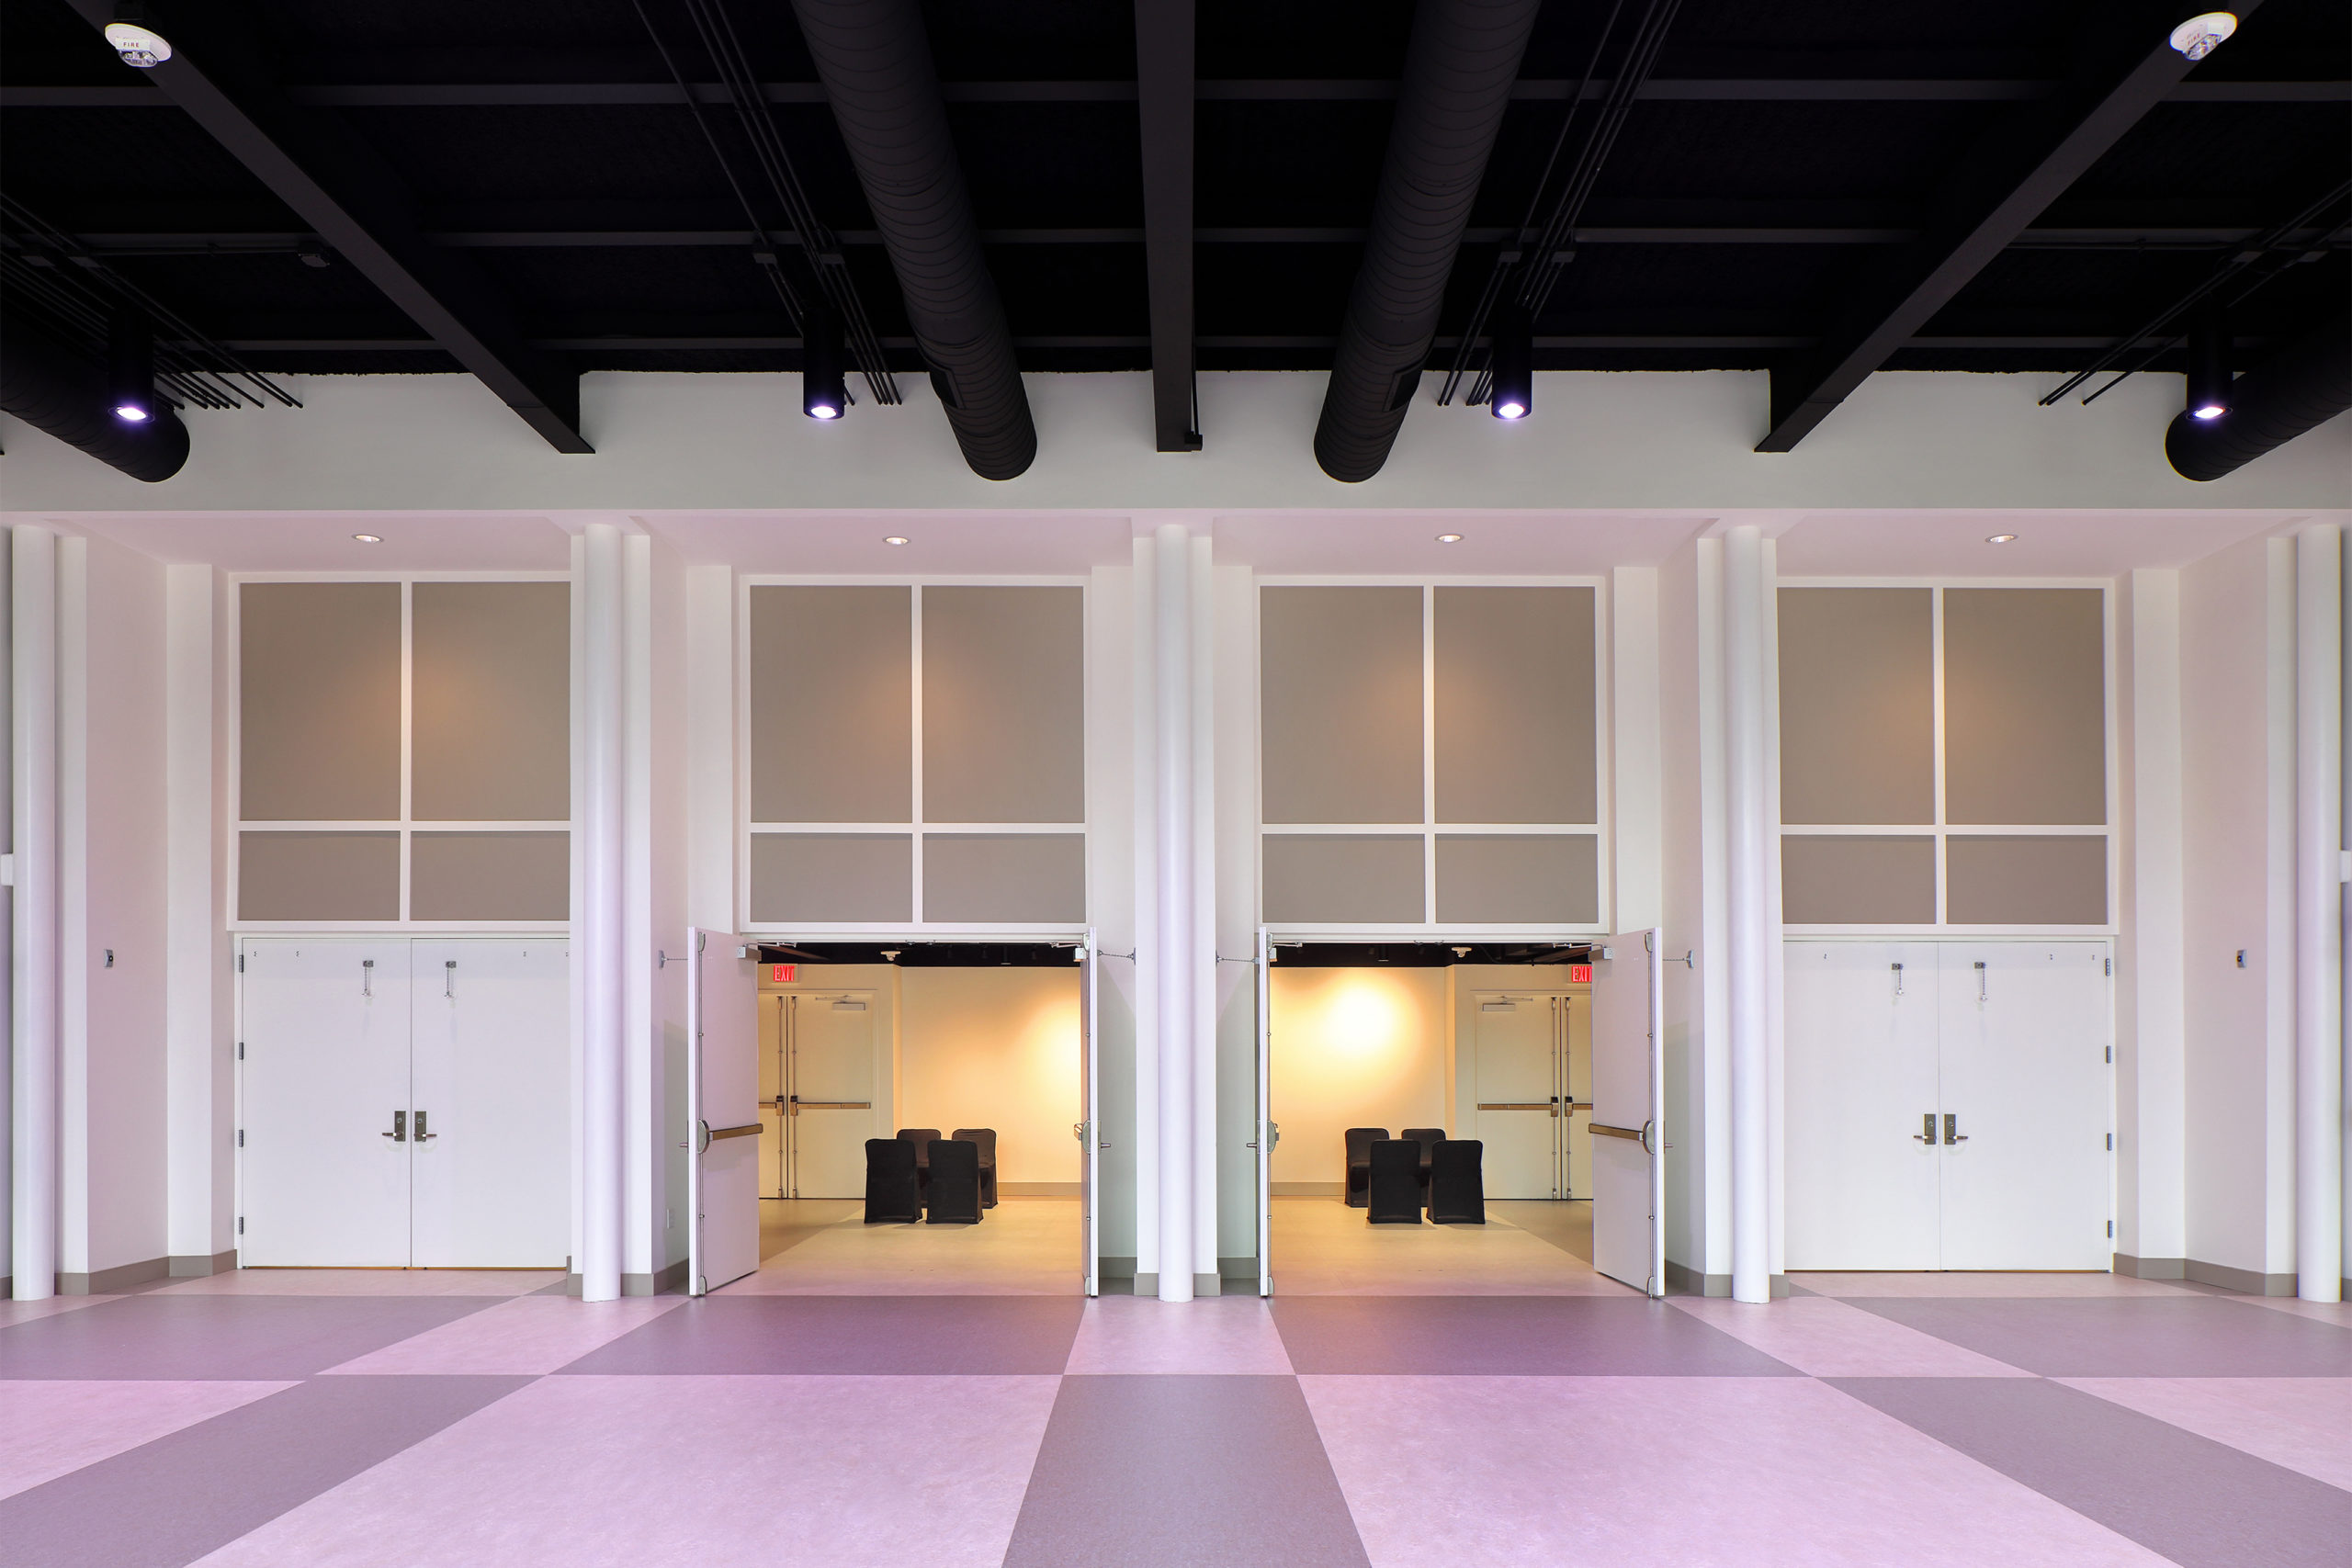 View to gallery from multipurpose space illustrating combined use of the two spaces.